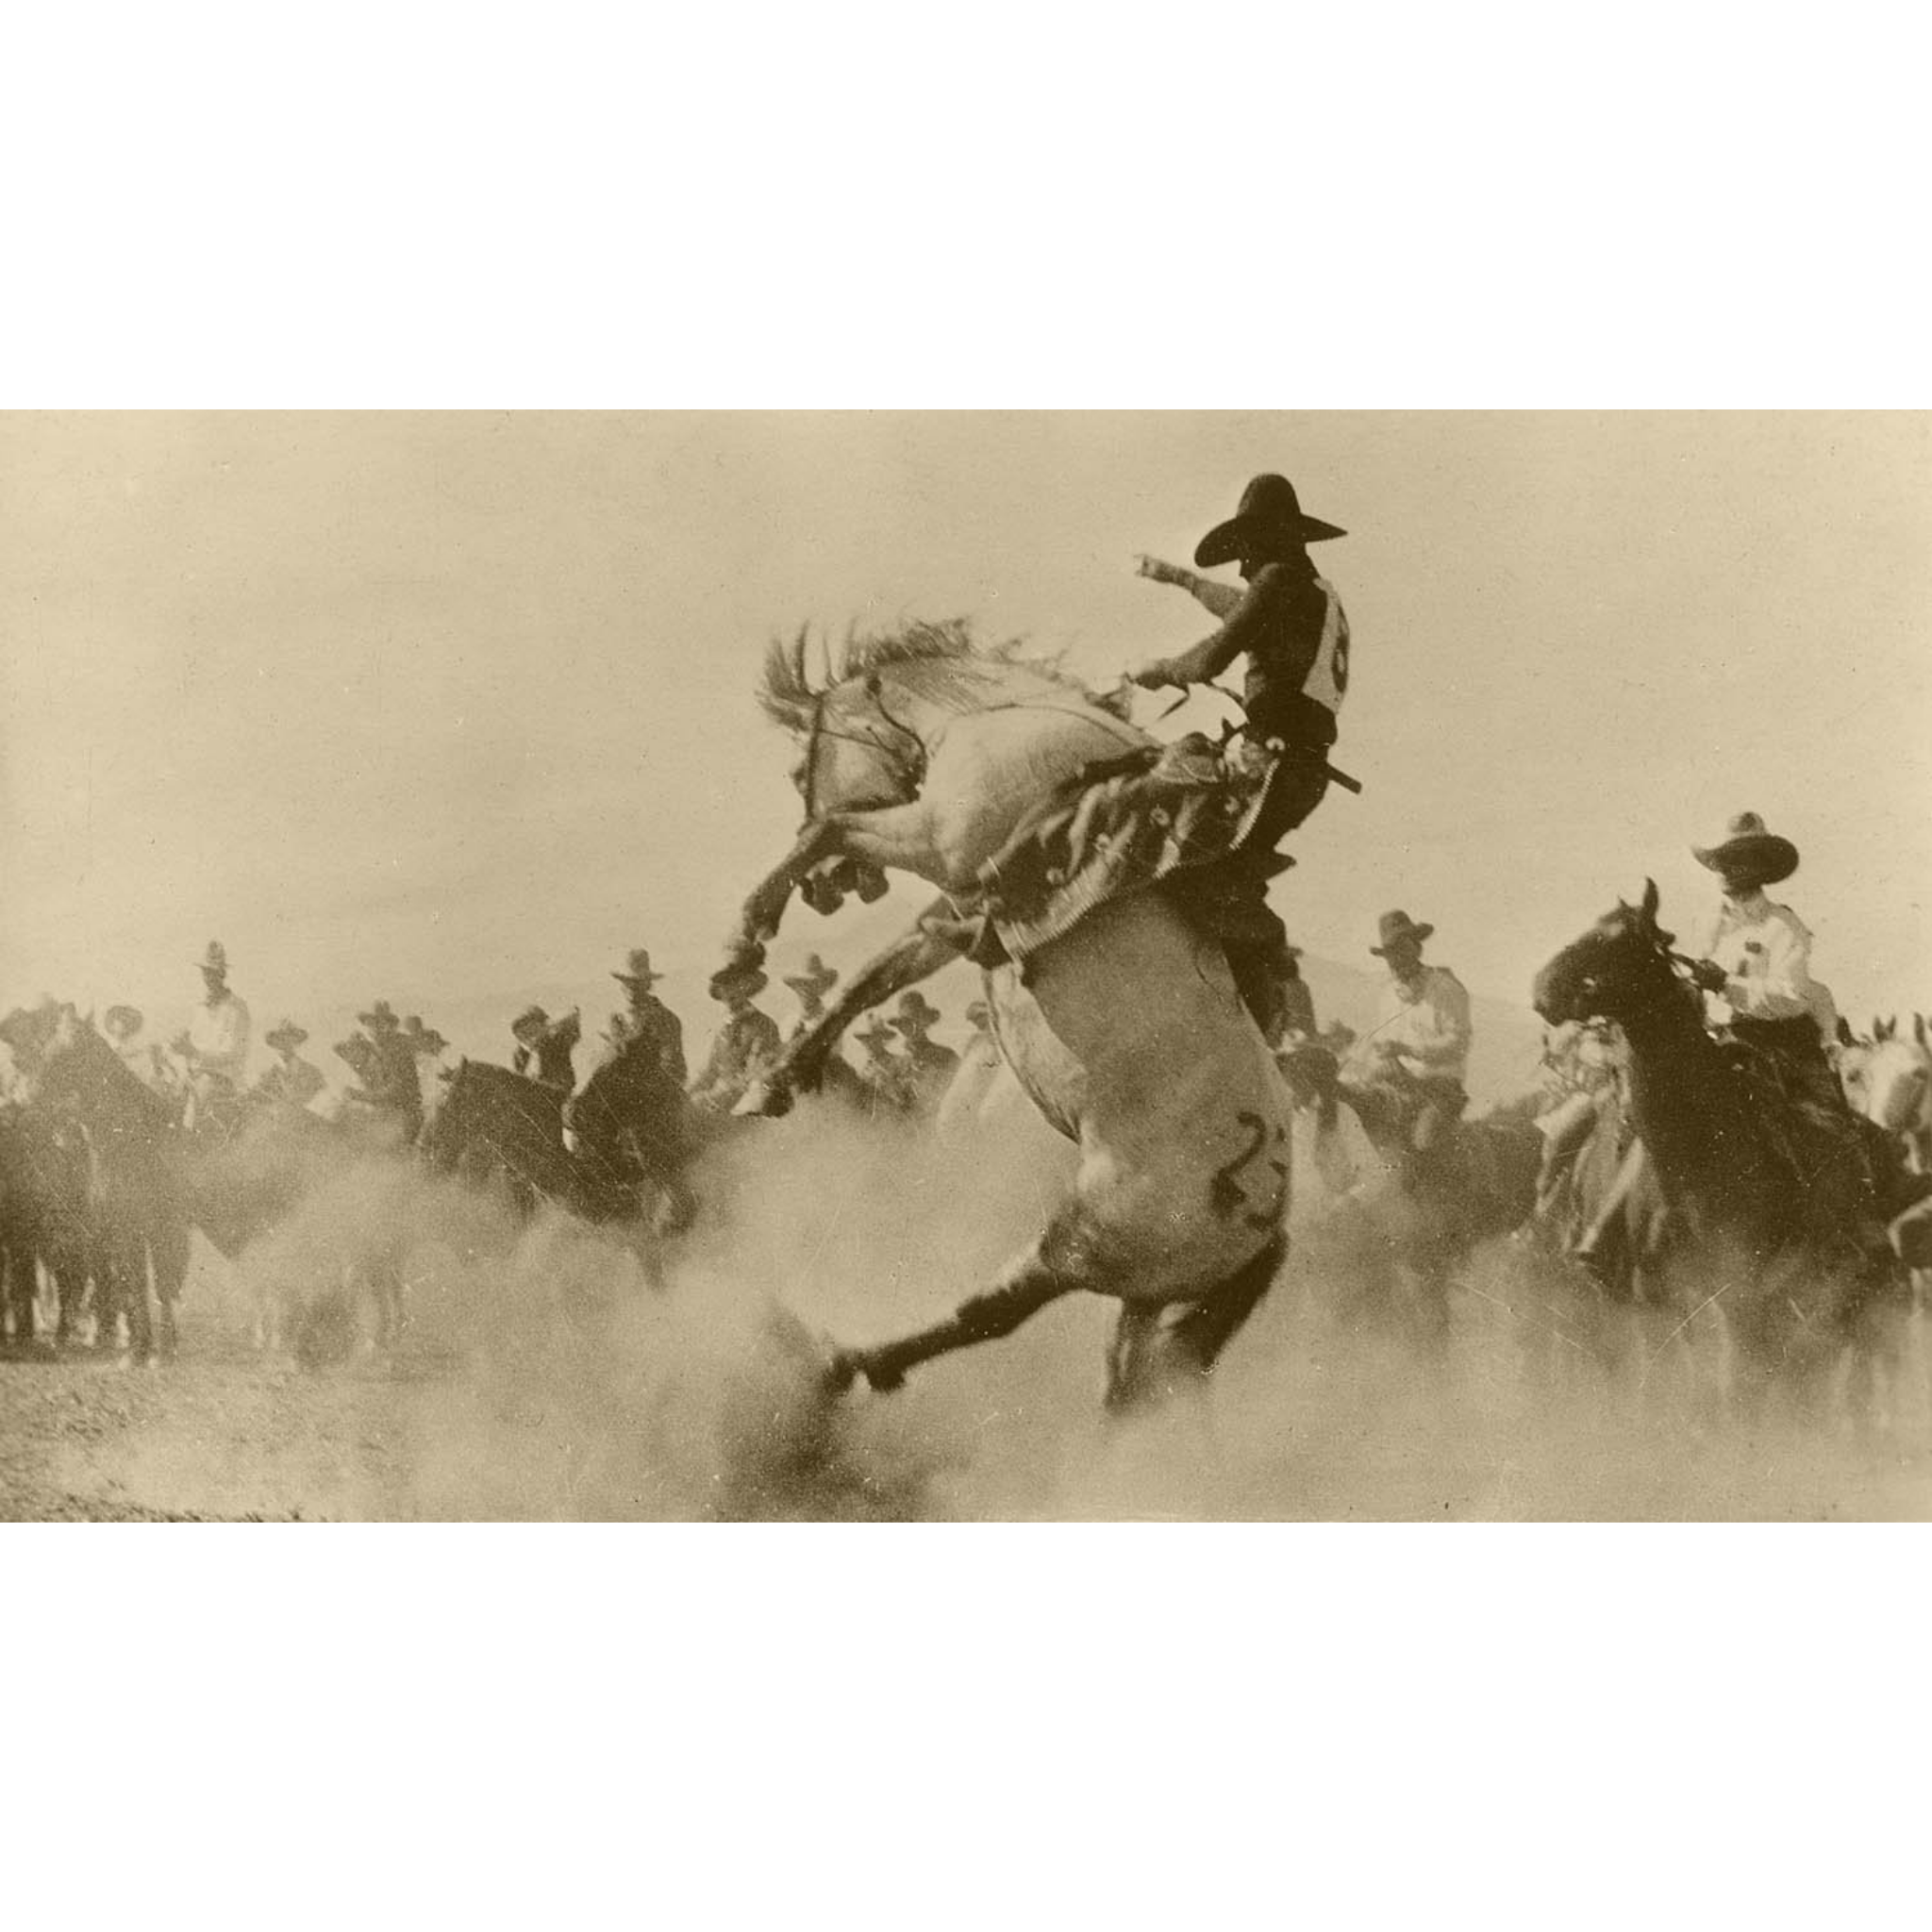 Rodeo Cowboys 4 - Cowboy on Bucking Bronco - ca. 1916 Photograph